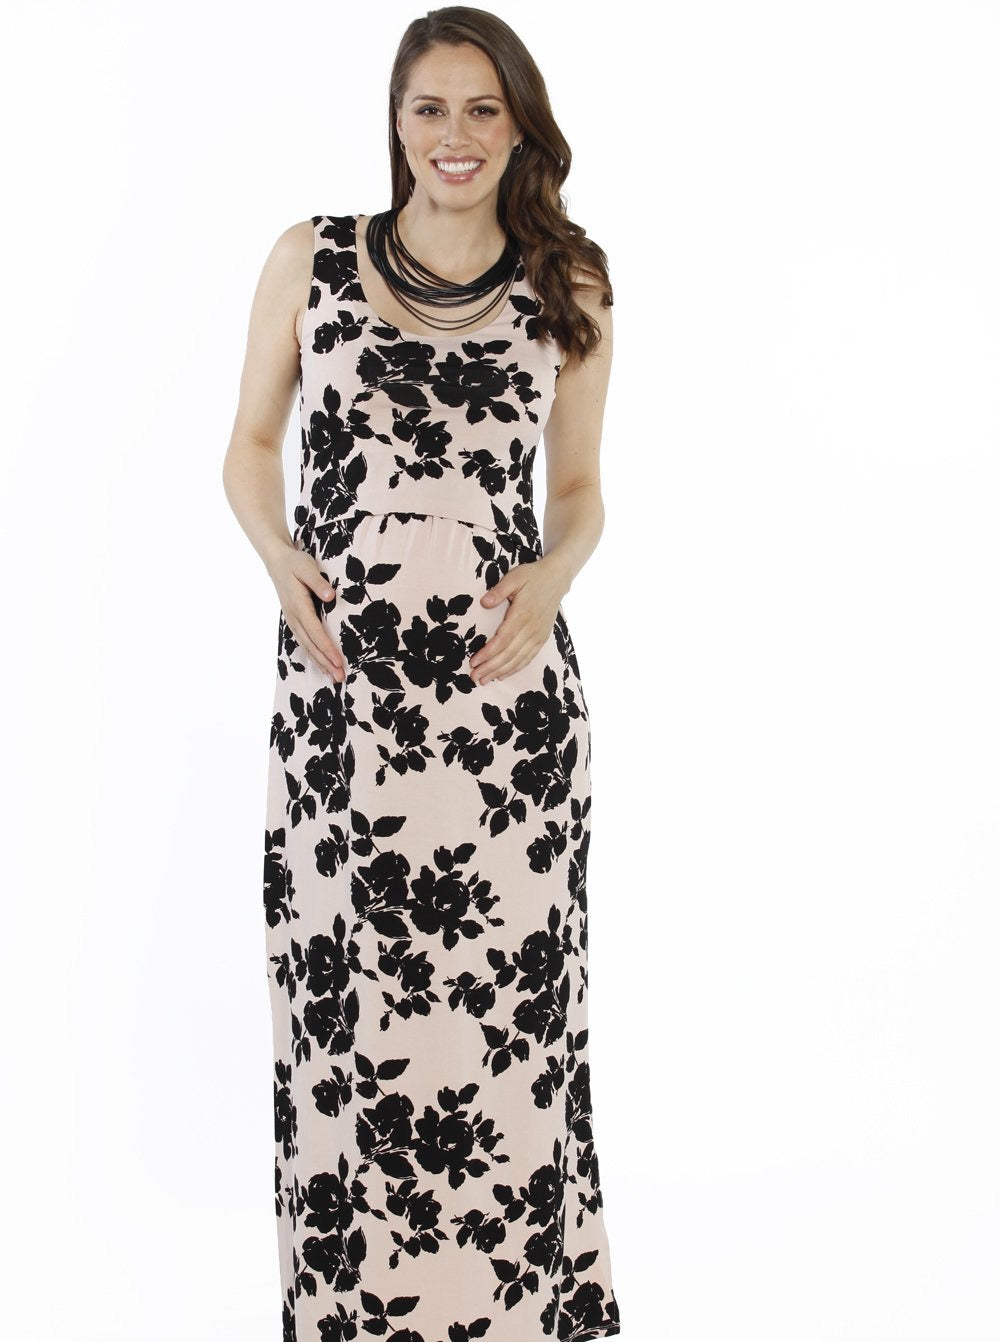 Angel Maternity 'Busy Mama' Nursing Maxi Dress - Floral in Pink